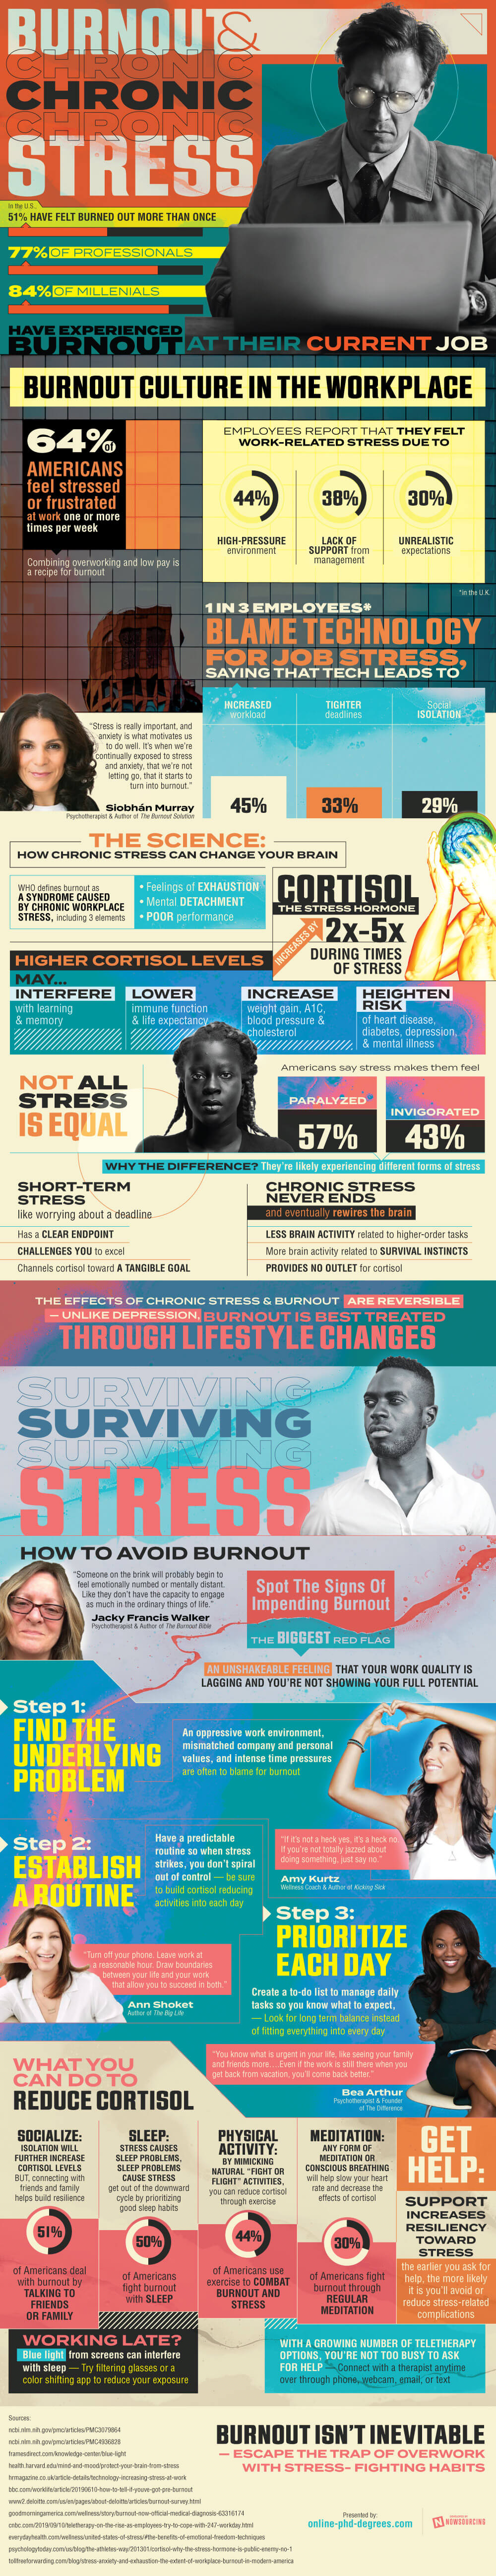 Burnout and Toxic Stress